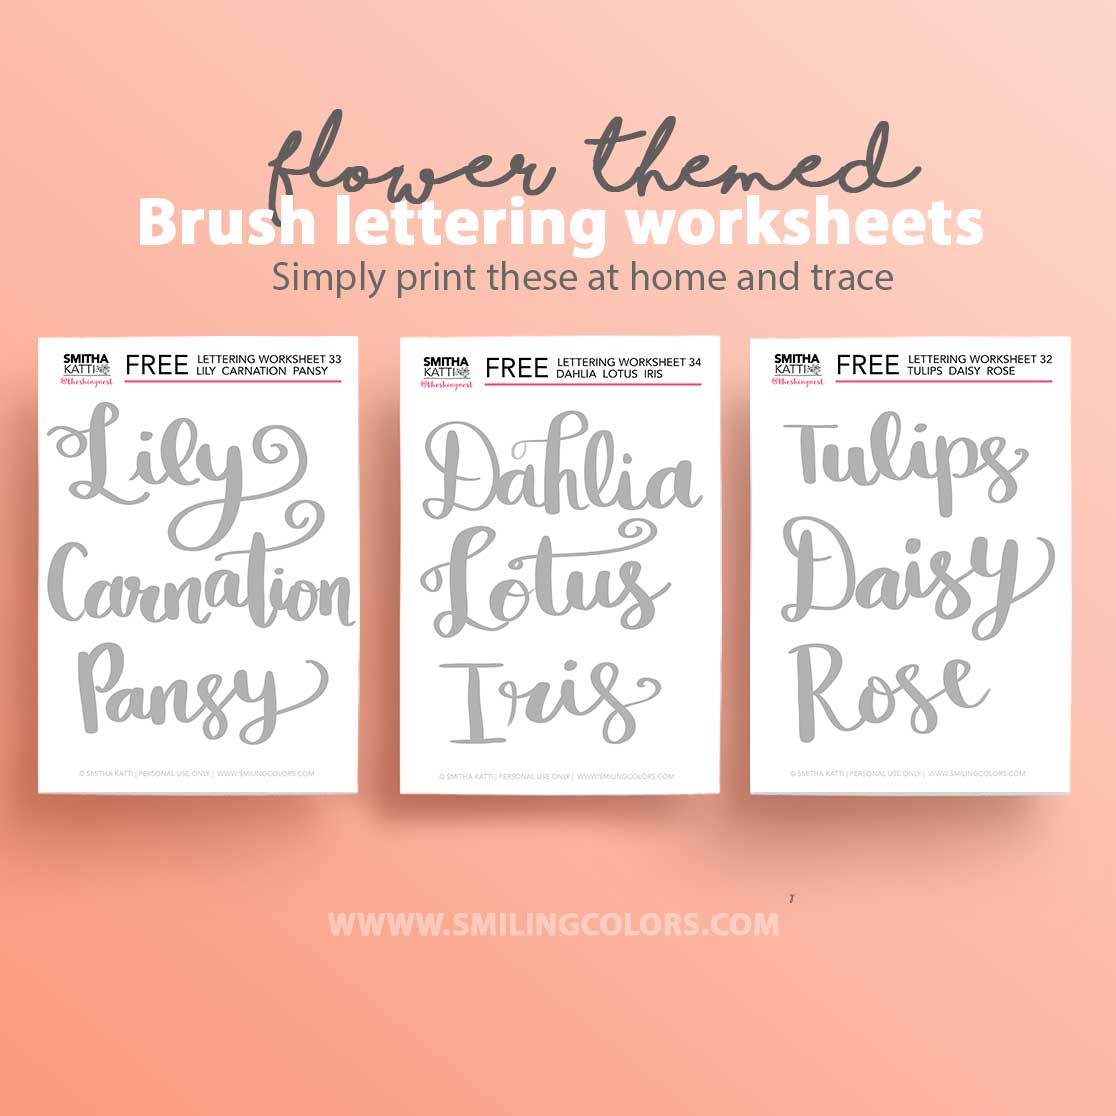 image about Lettering Printable titled Flower themed brush lettering coach sheets printable totally free